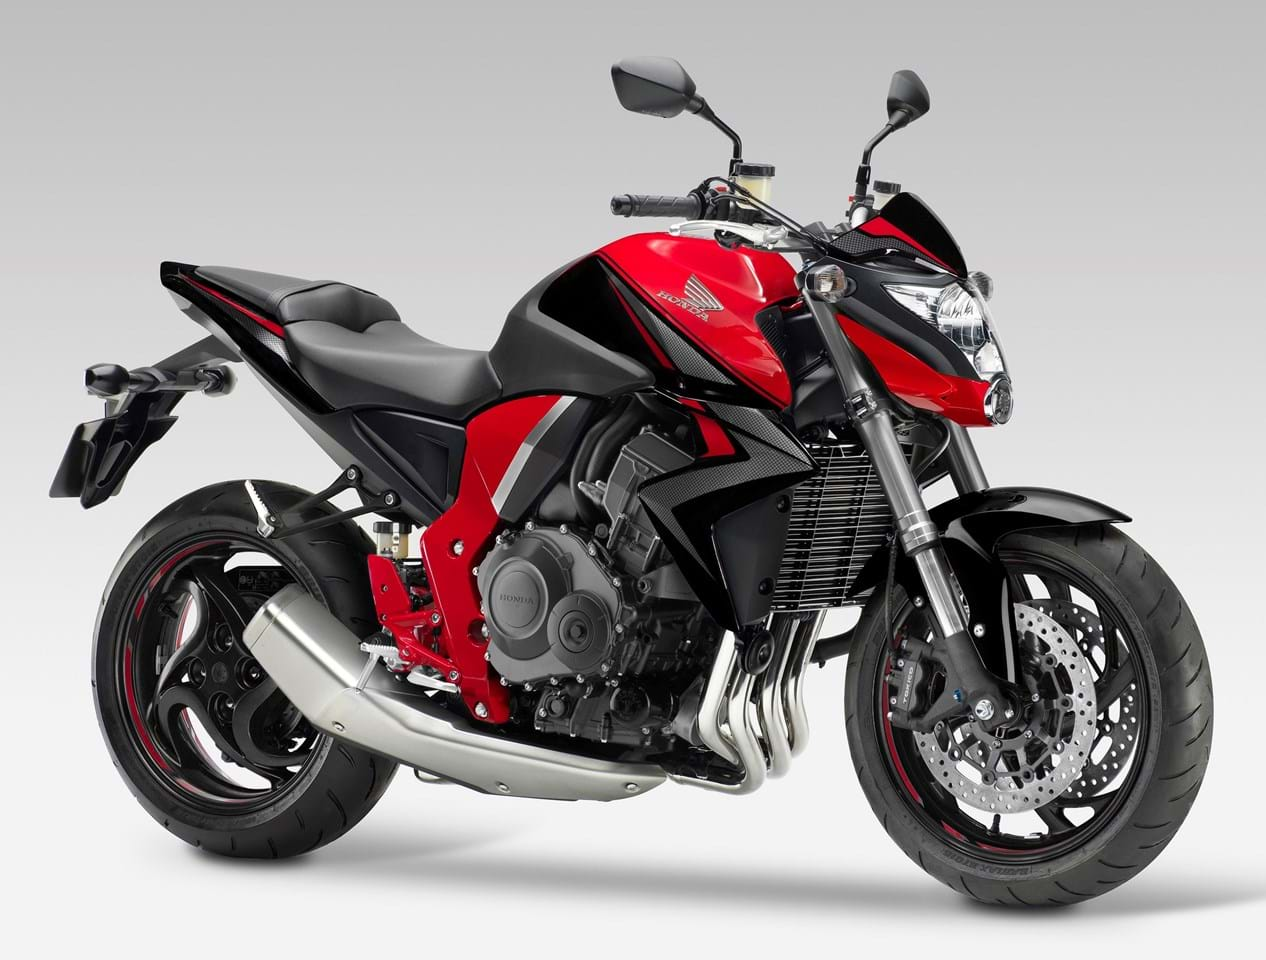 Honda CB1000R O For Sale O Price Guide O The Bike Market